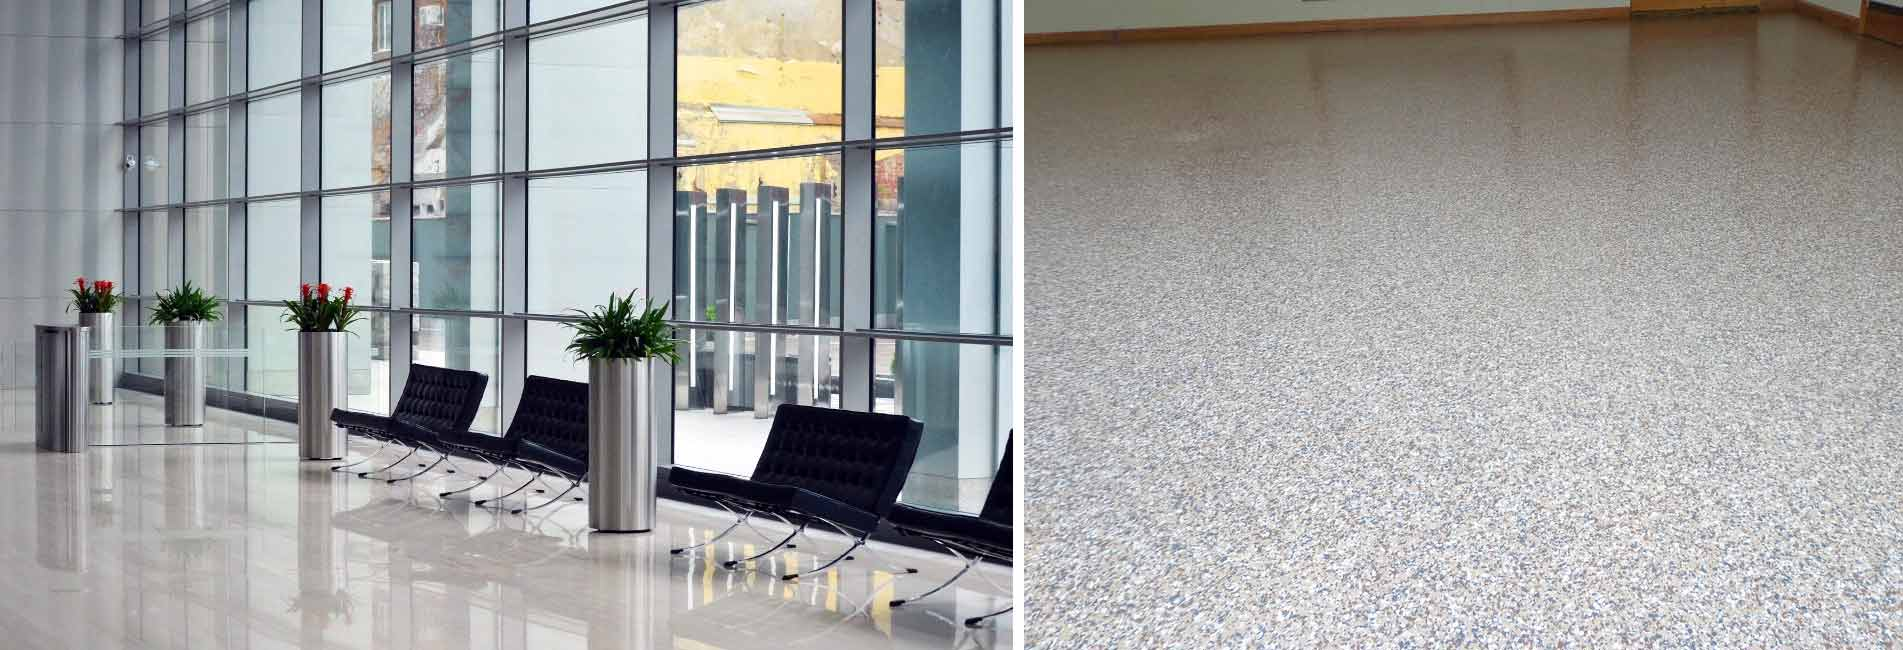 Flooring Services Strathfield, Commercial Epoxy Flooring Hurstville, Industrial Epoxy Flooring Sydney